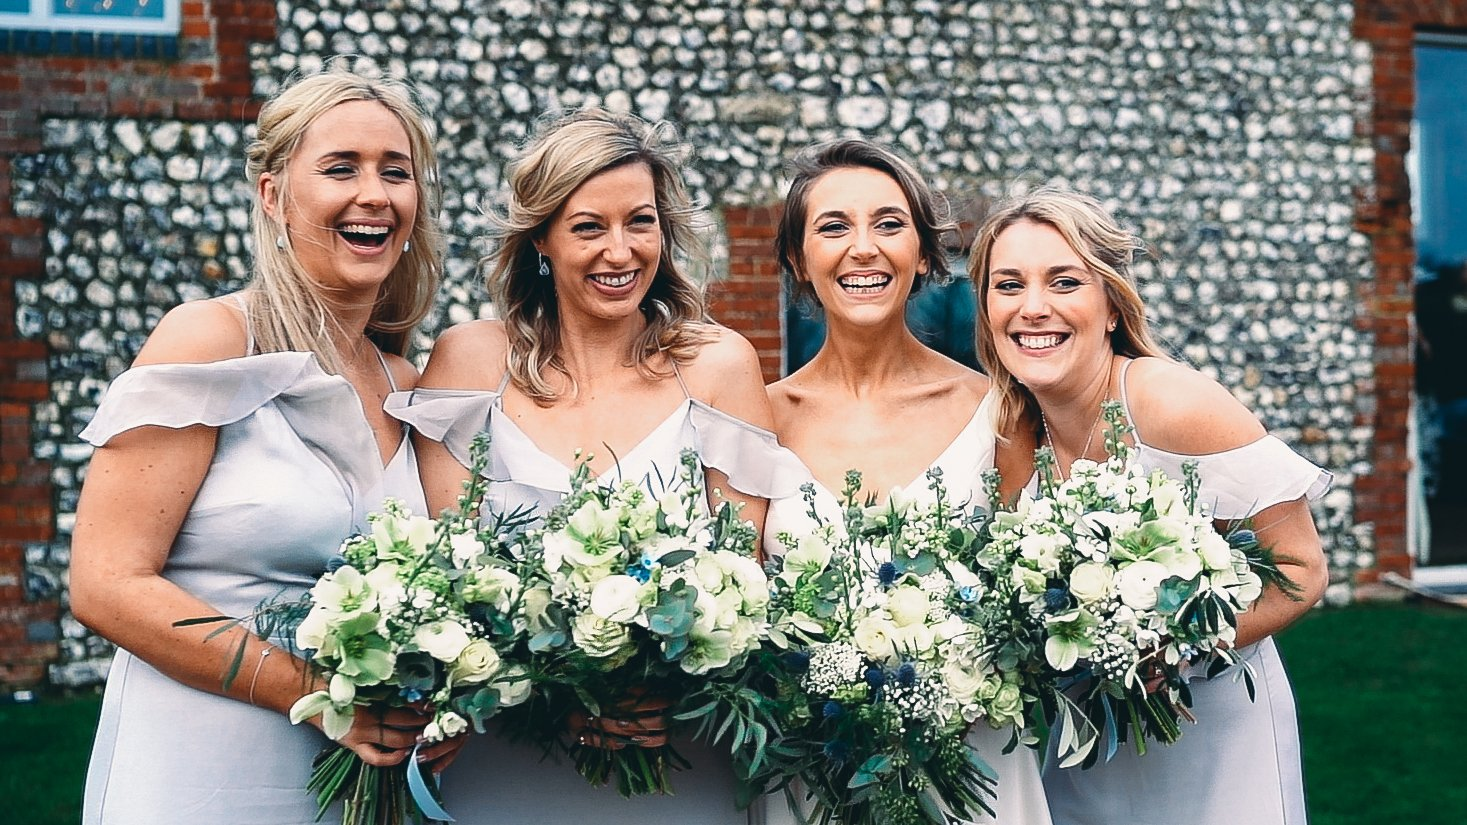 farbridge bridesmaids Sussex wedding videographer photographer